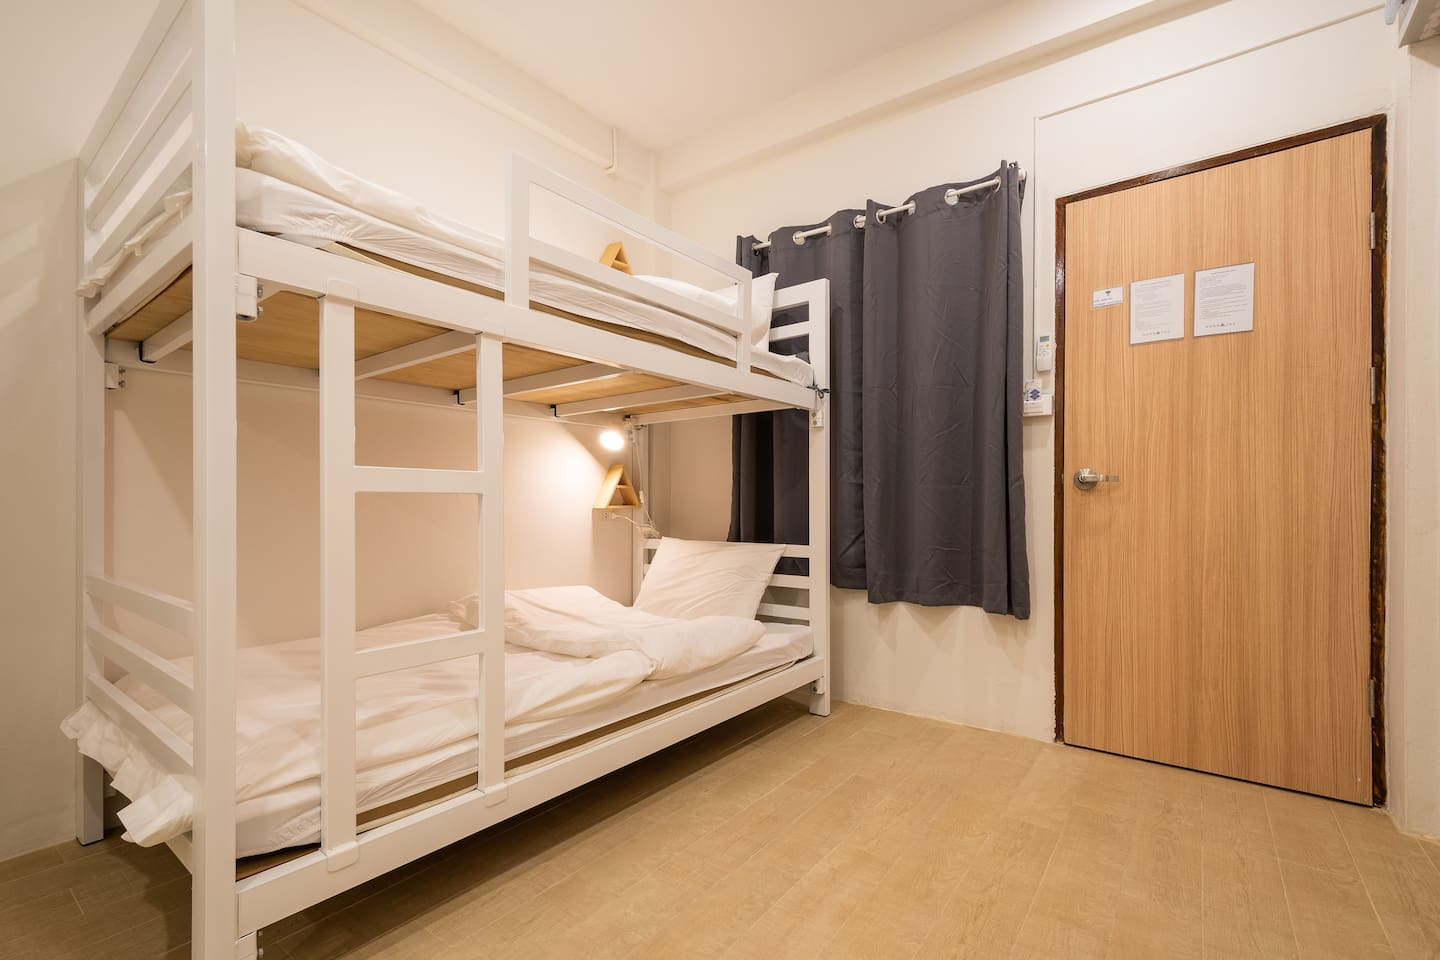 BED ROOM - Bunk bed with single bed - Lamp